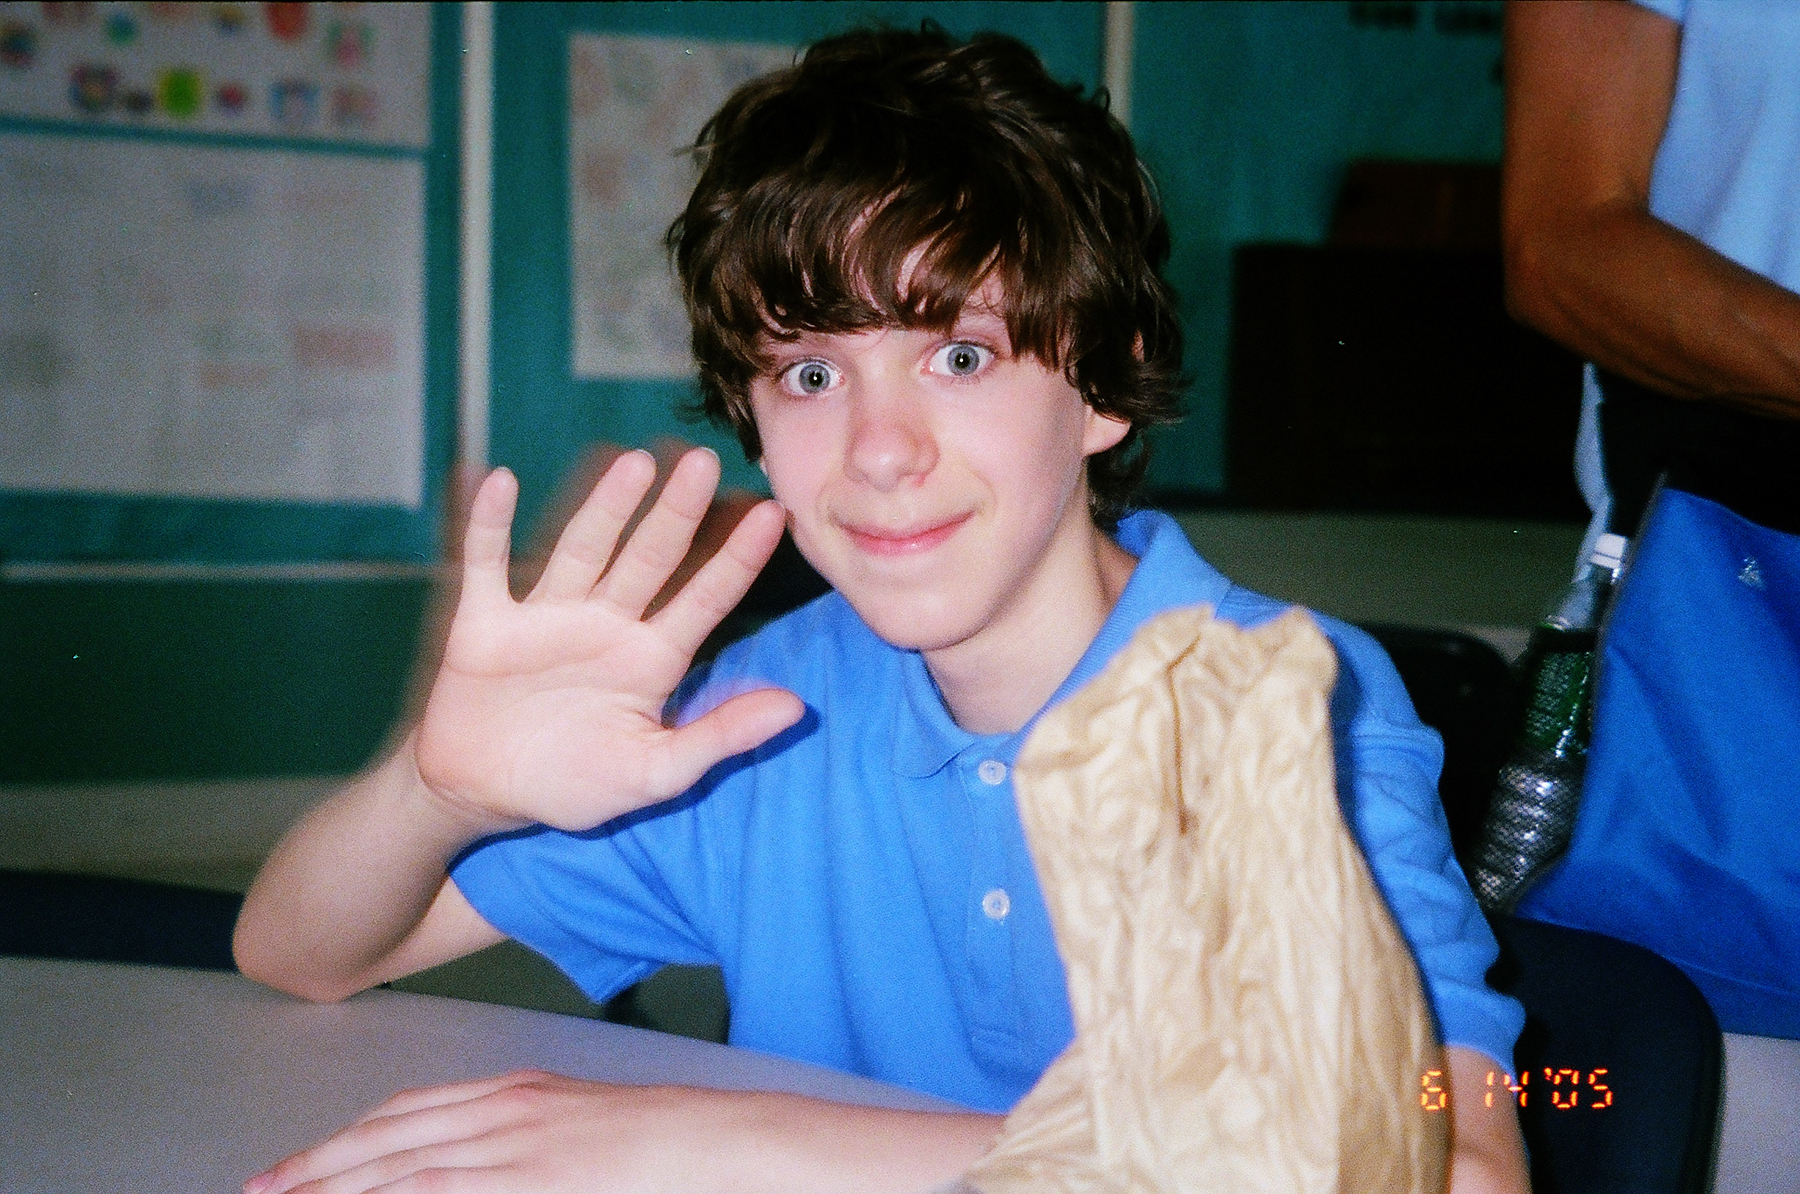 Adam Lanza pictured in a photograph from 2005 in Newtown, Conn.